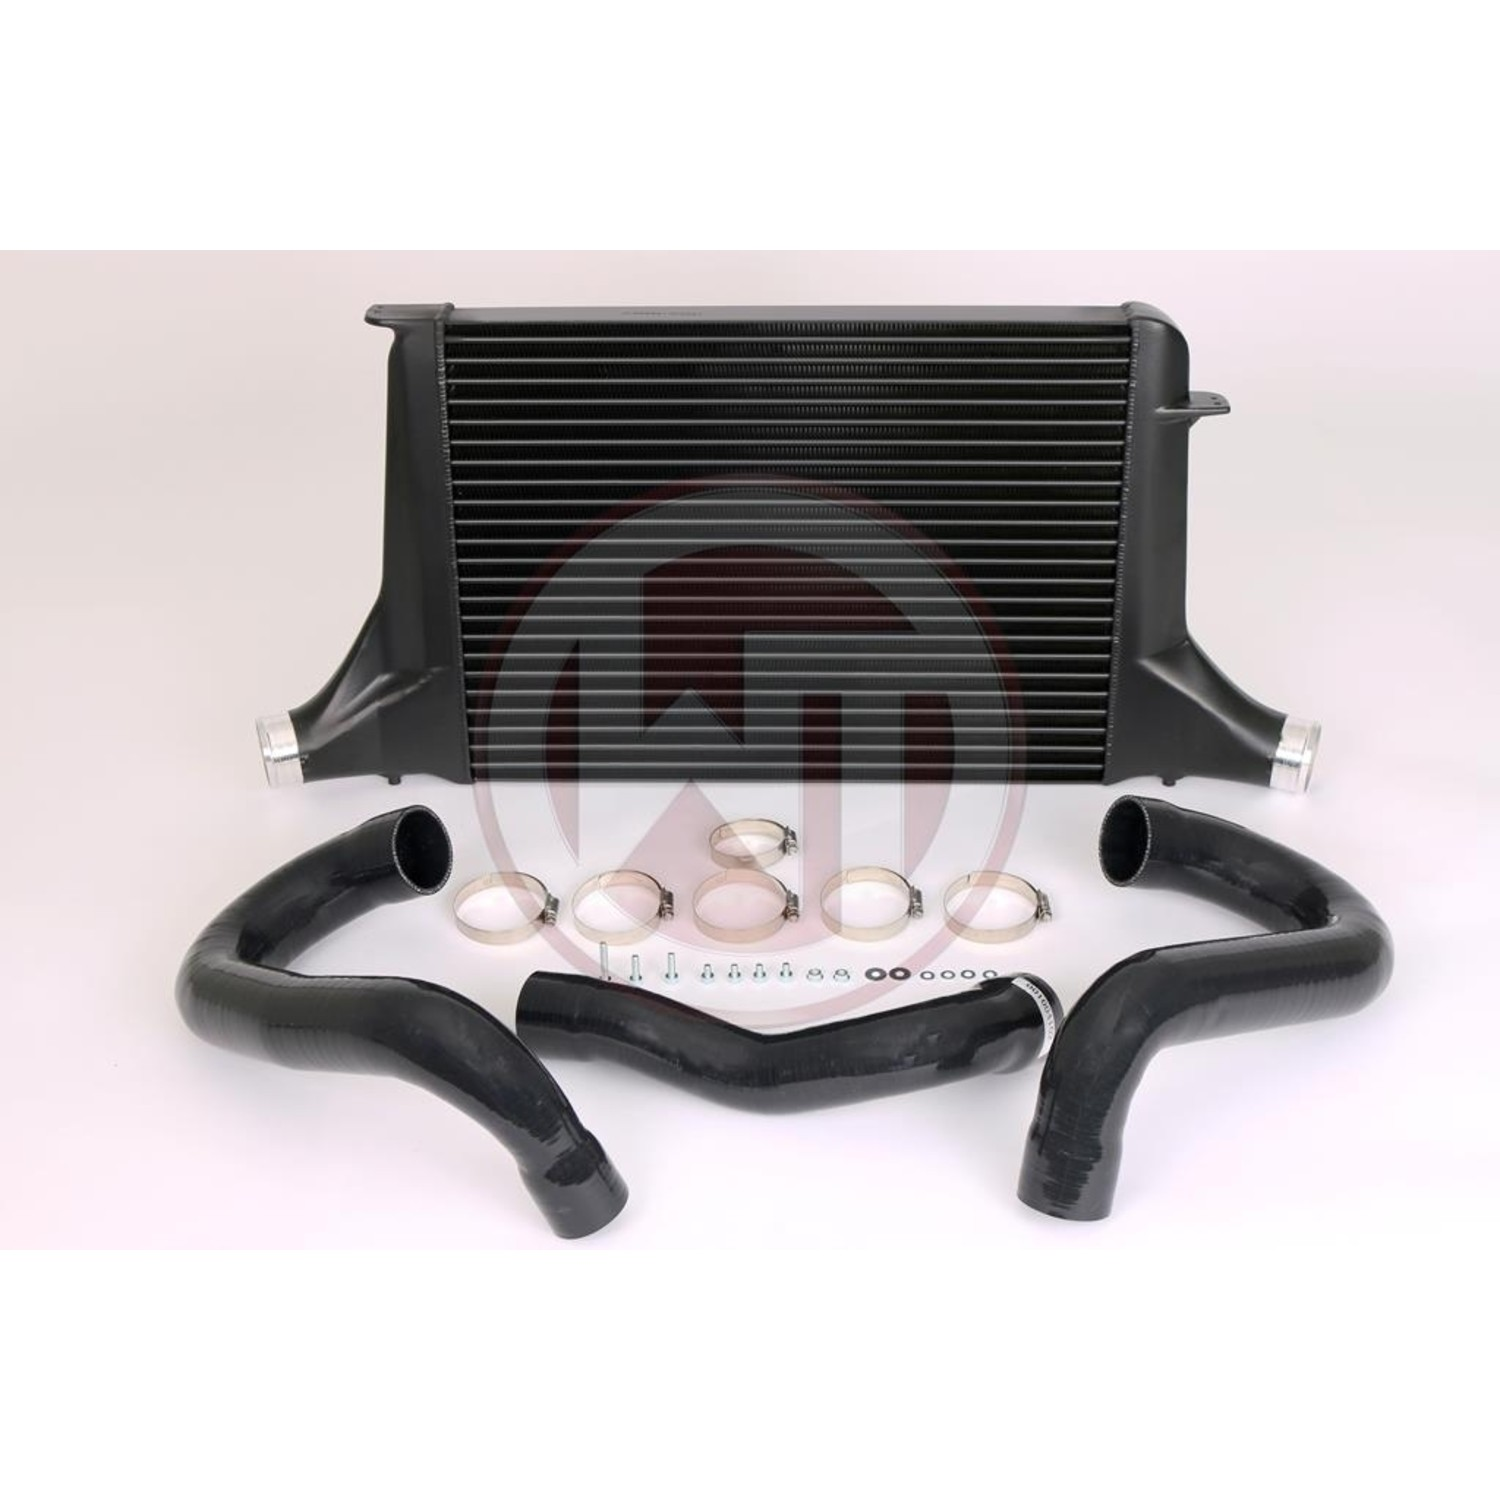 Vauxhall Corsa VXR Competition Intercooler Kit